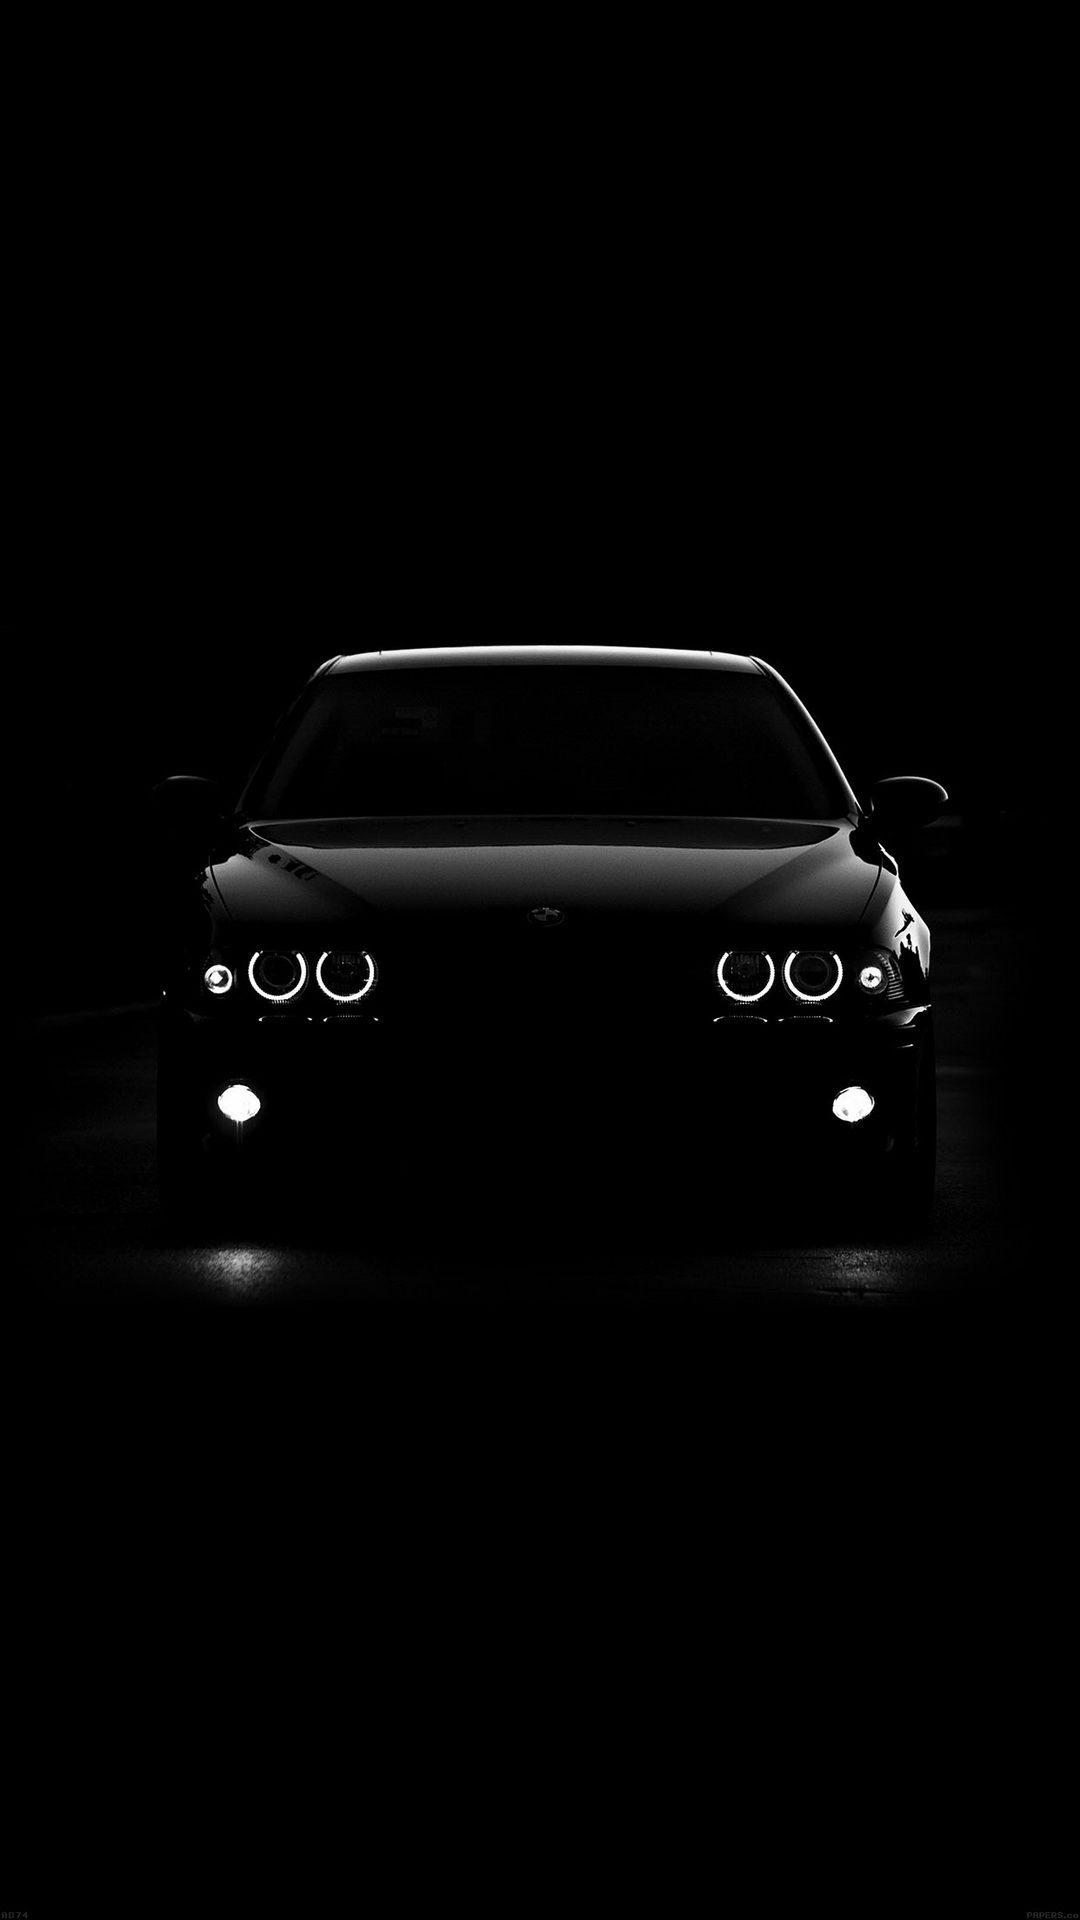 Sick Iphone 4 Wallpapers Best Cars Hd Wallpapers 1080x1920 For Htc One